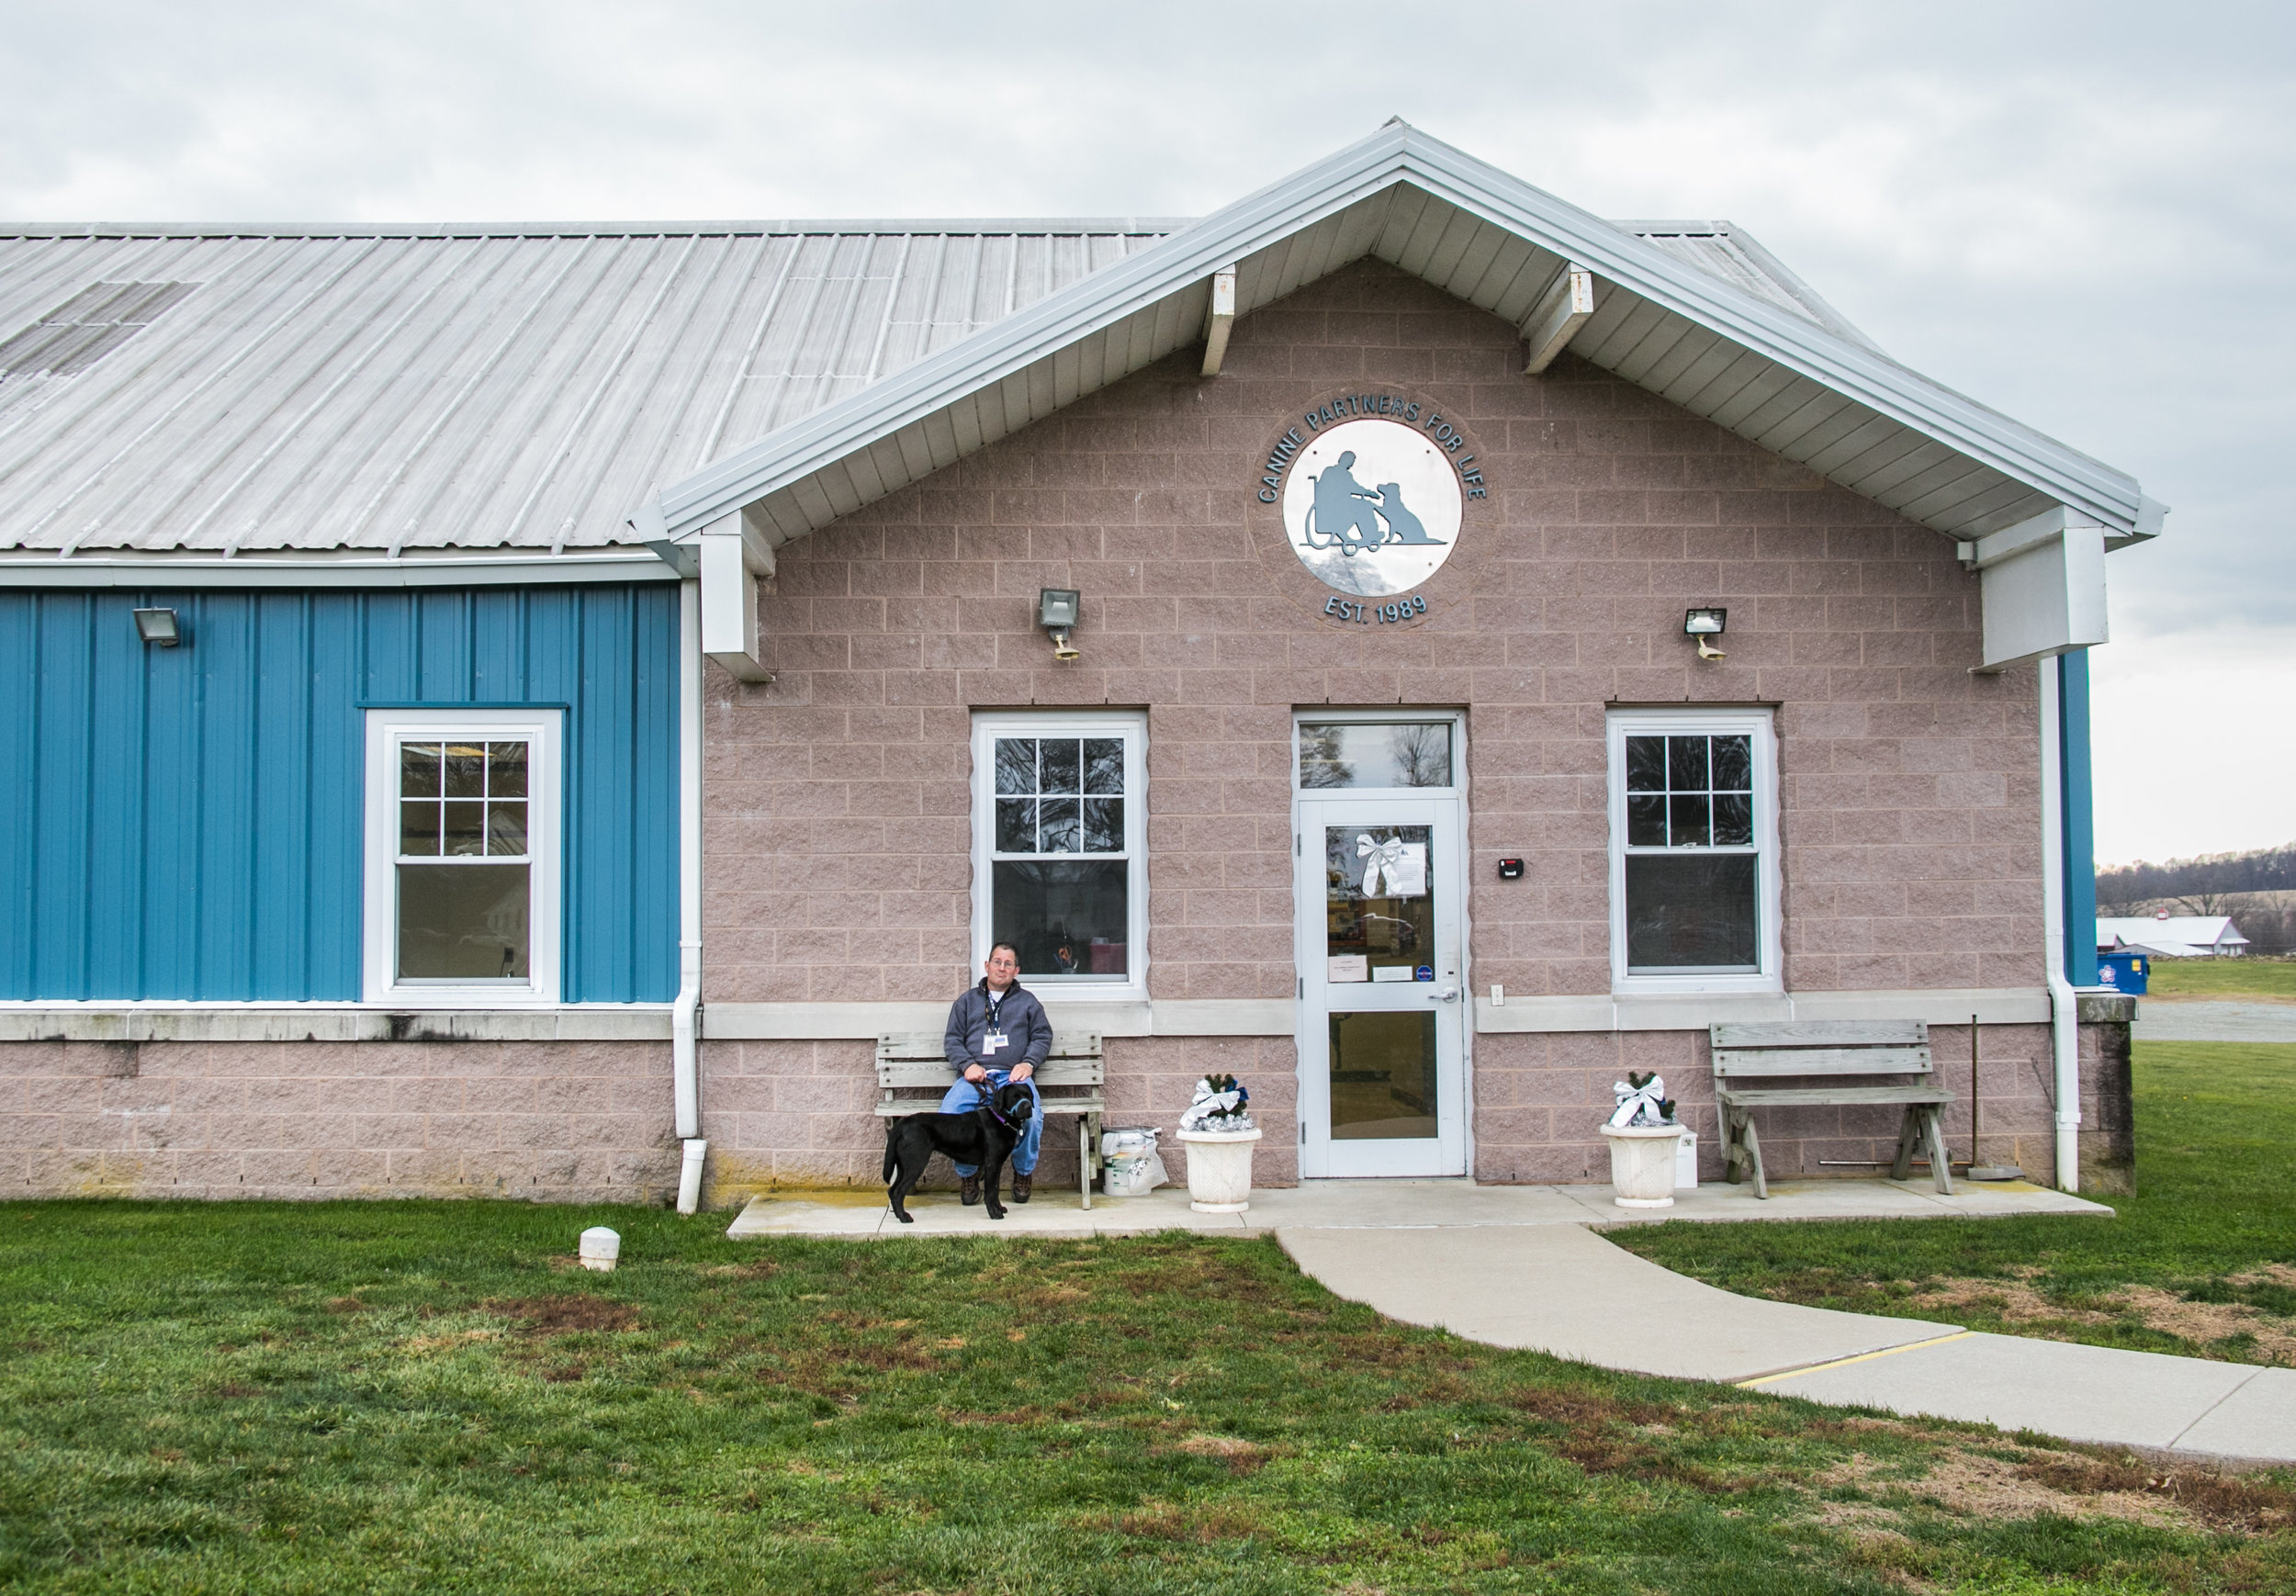 The campus of the Canine Partners for Life Headquarters in Cochranville, PA.